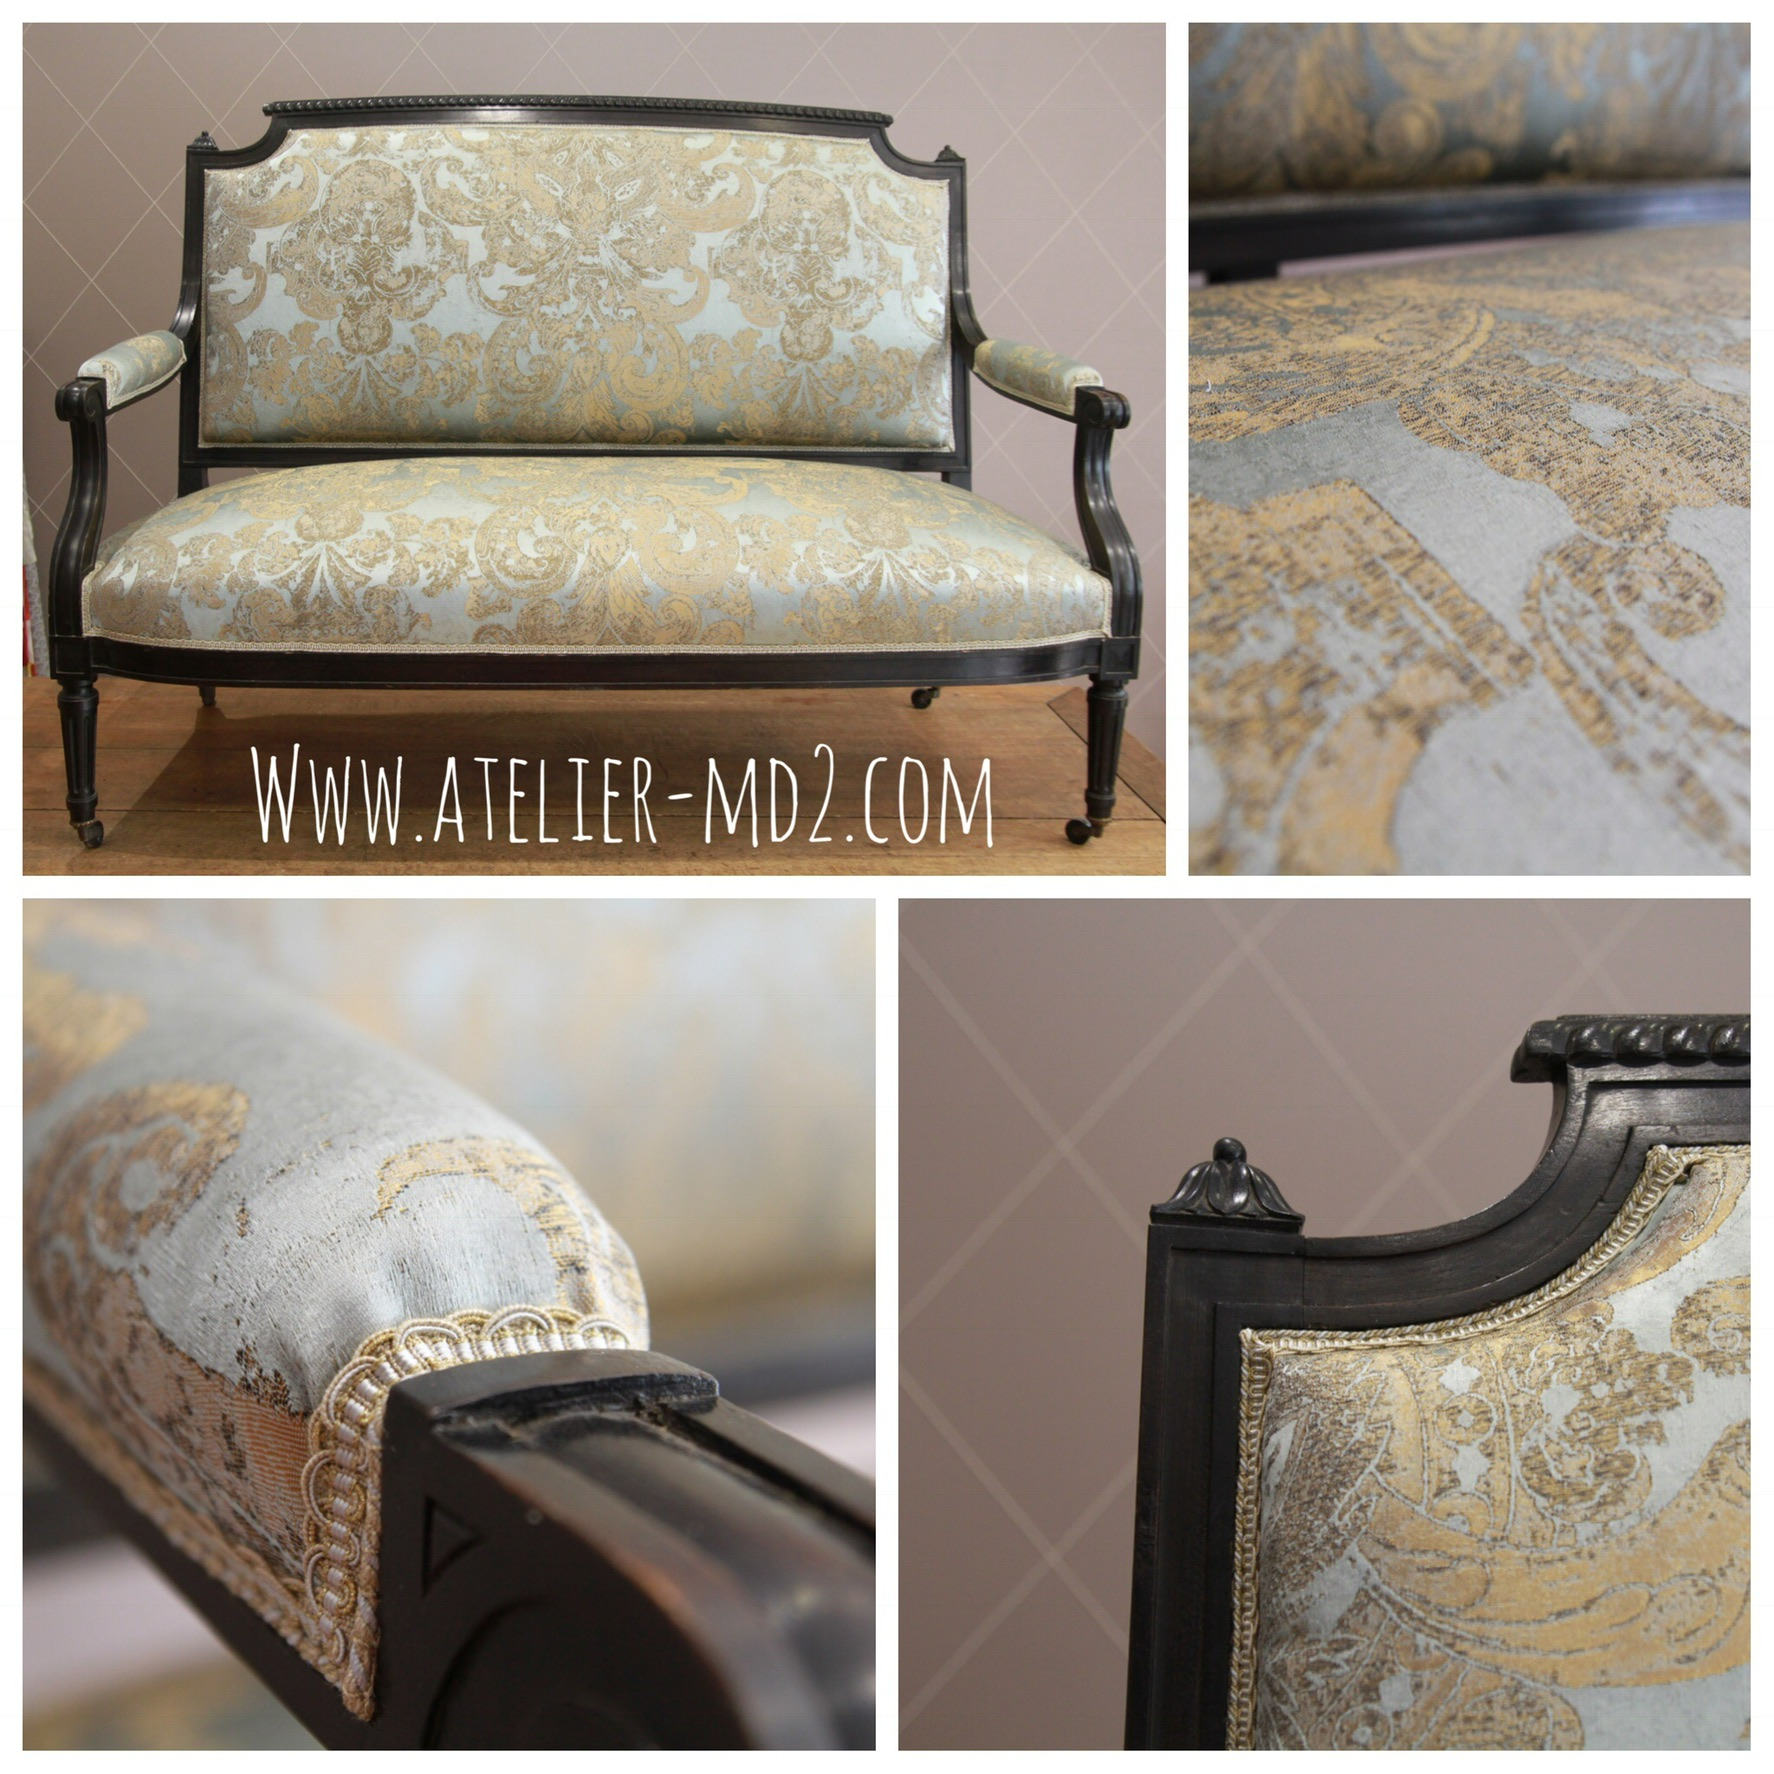 Banquette Napoleon III - Atelier MD2Atelier MD2 on